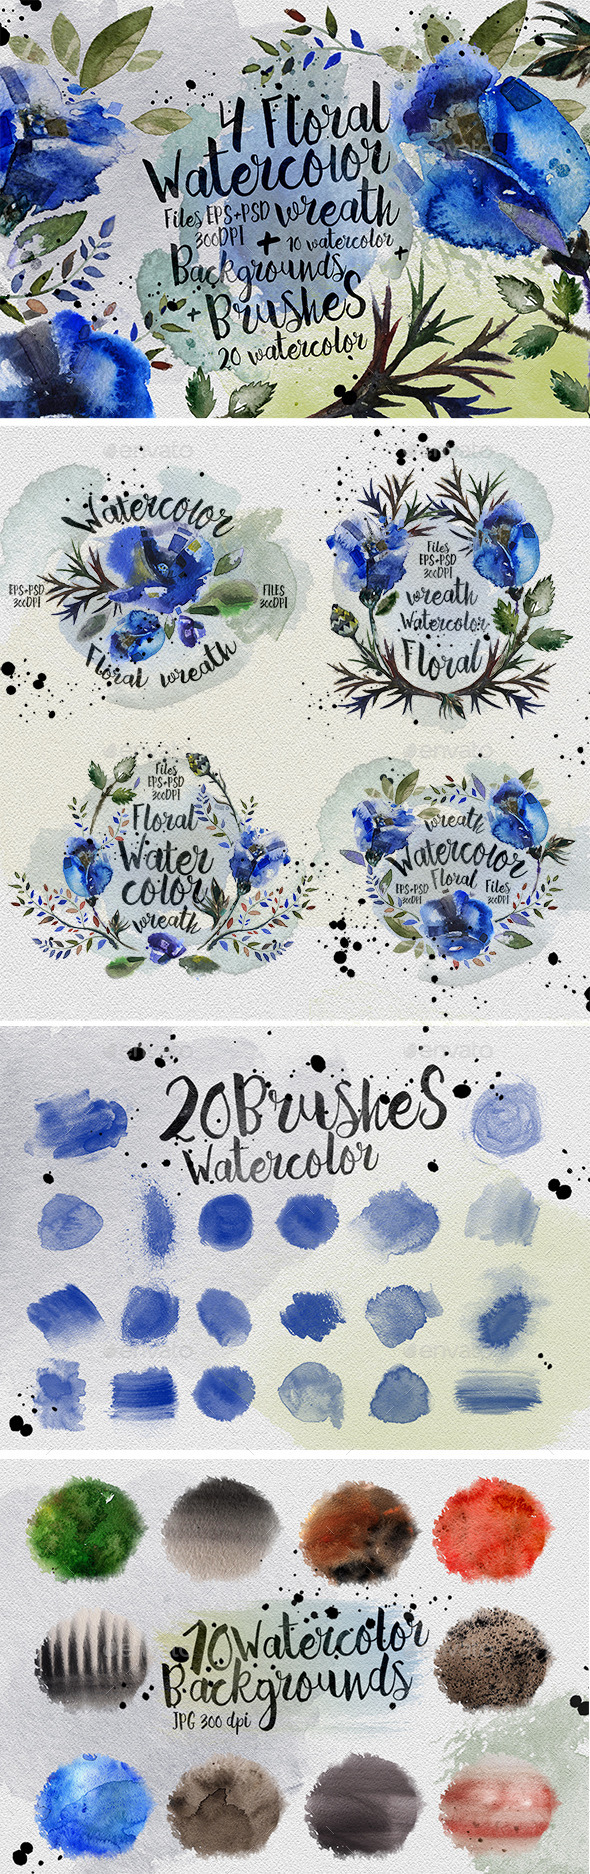 Floral Watercolor Wreaths - Flourishes / Swirls Decorative